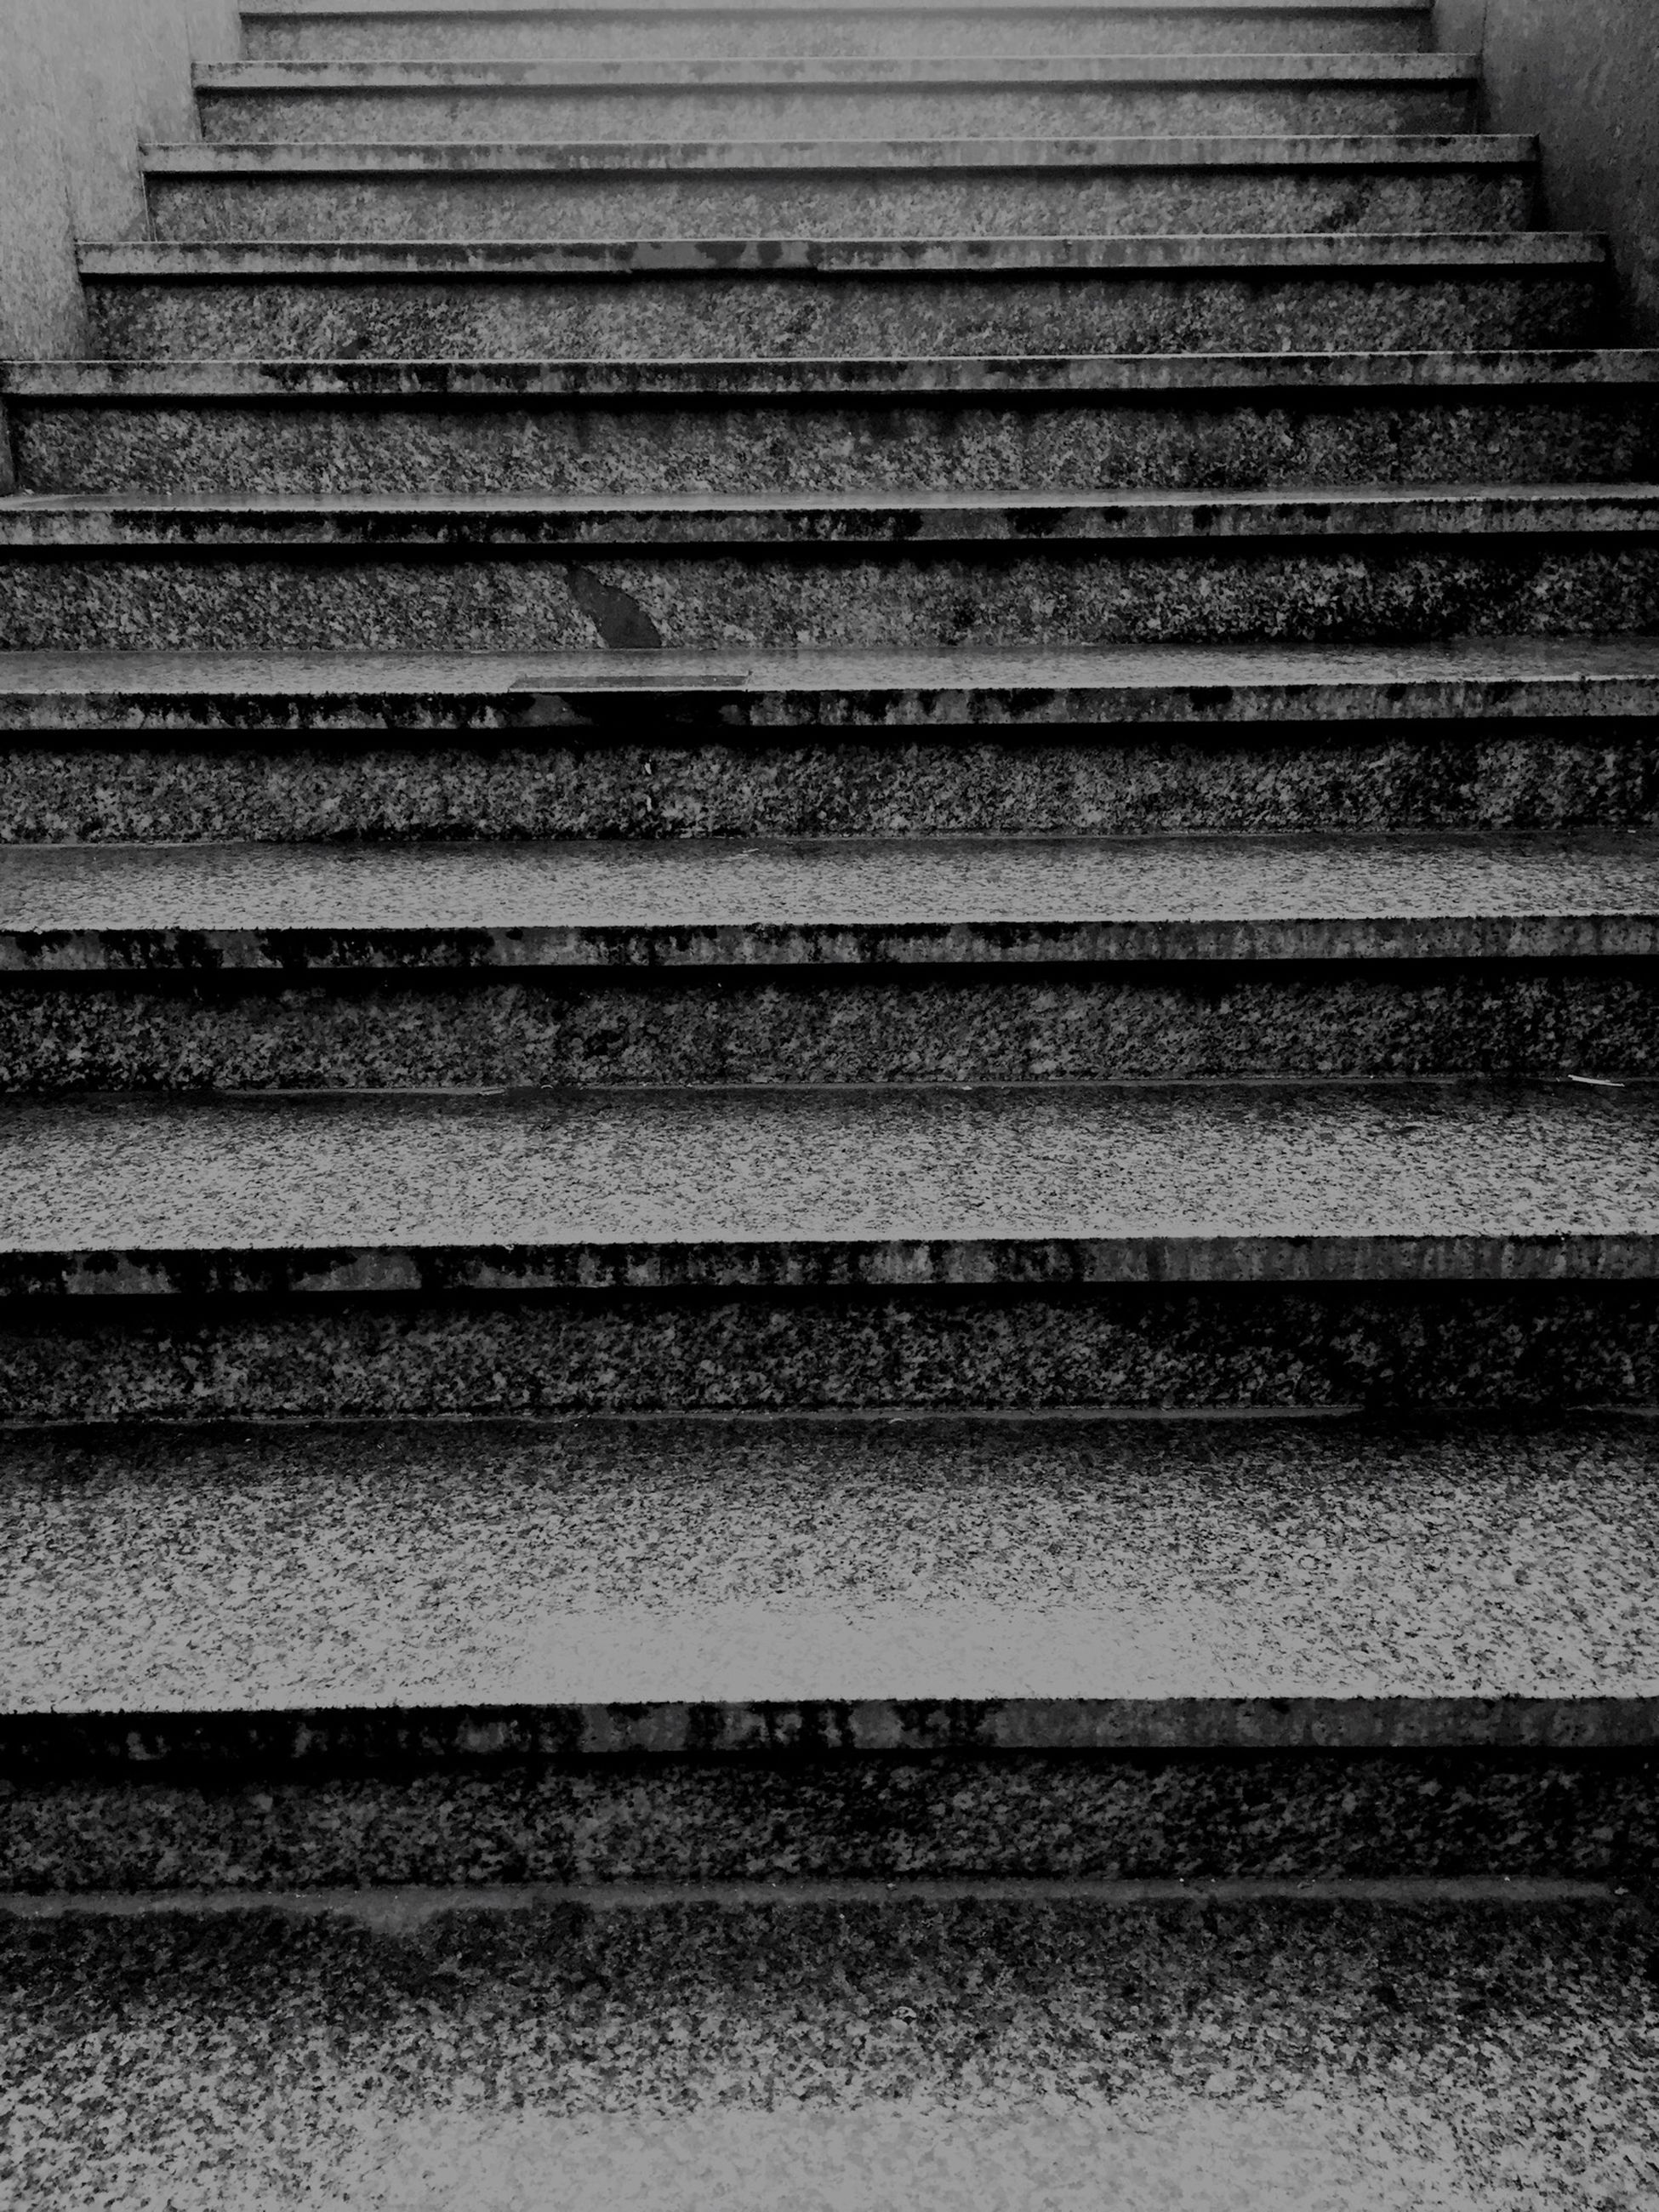 steps, pattern, textured, the way forward, steps and staircases, full frame, backgrounds, wood - material, no people, staircase, high angle view, close-up, built structure, indoors, diminishing perspective, wall - building feature, in a row, day, surface level